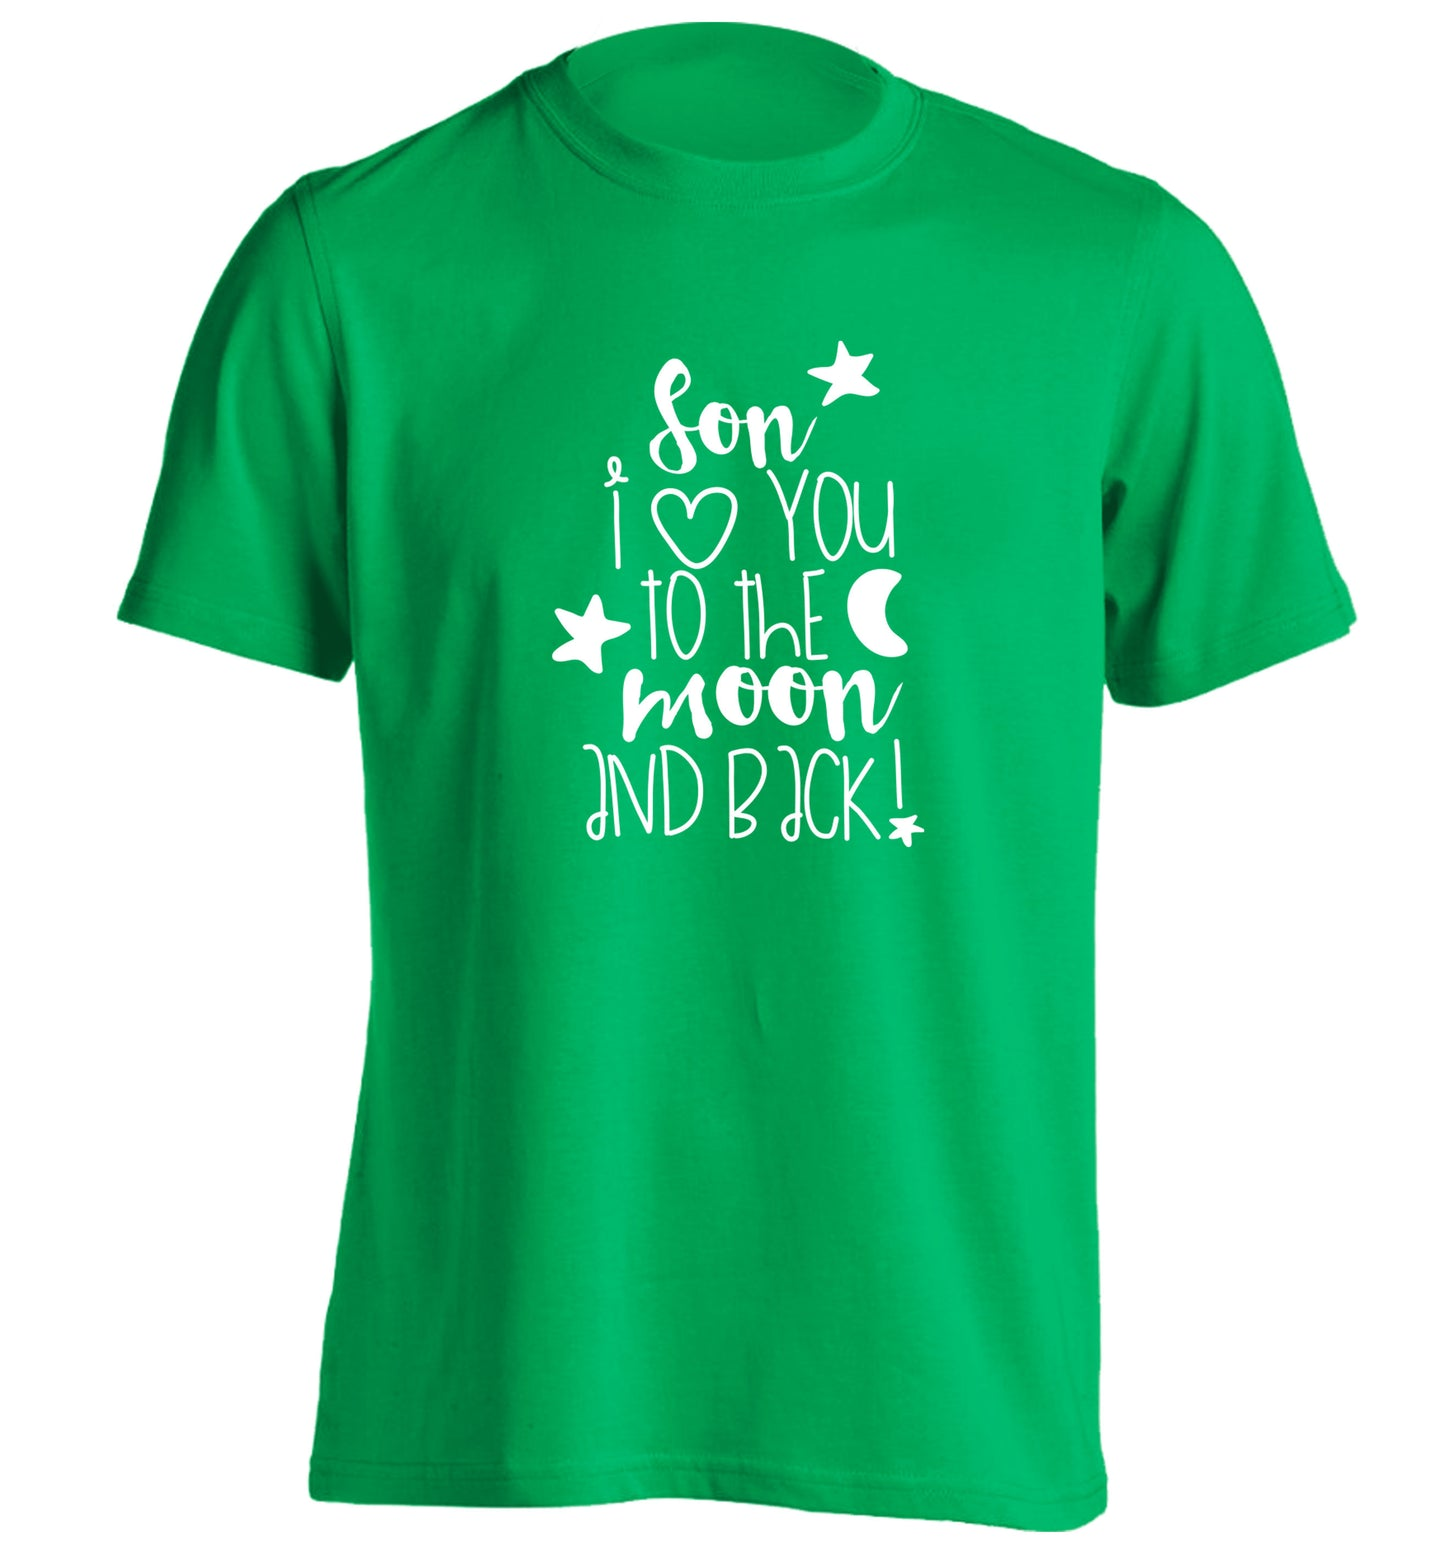 Son I love you to the moon and back adults unisex green Tshirt 2XL